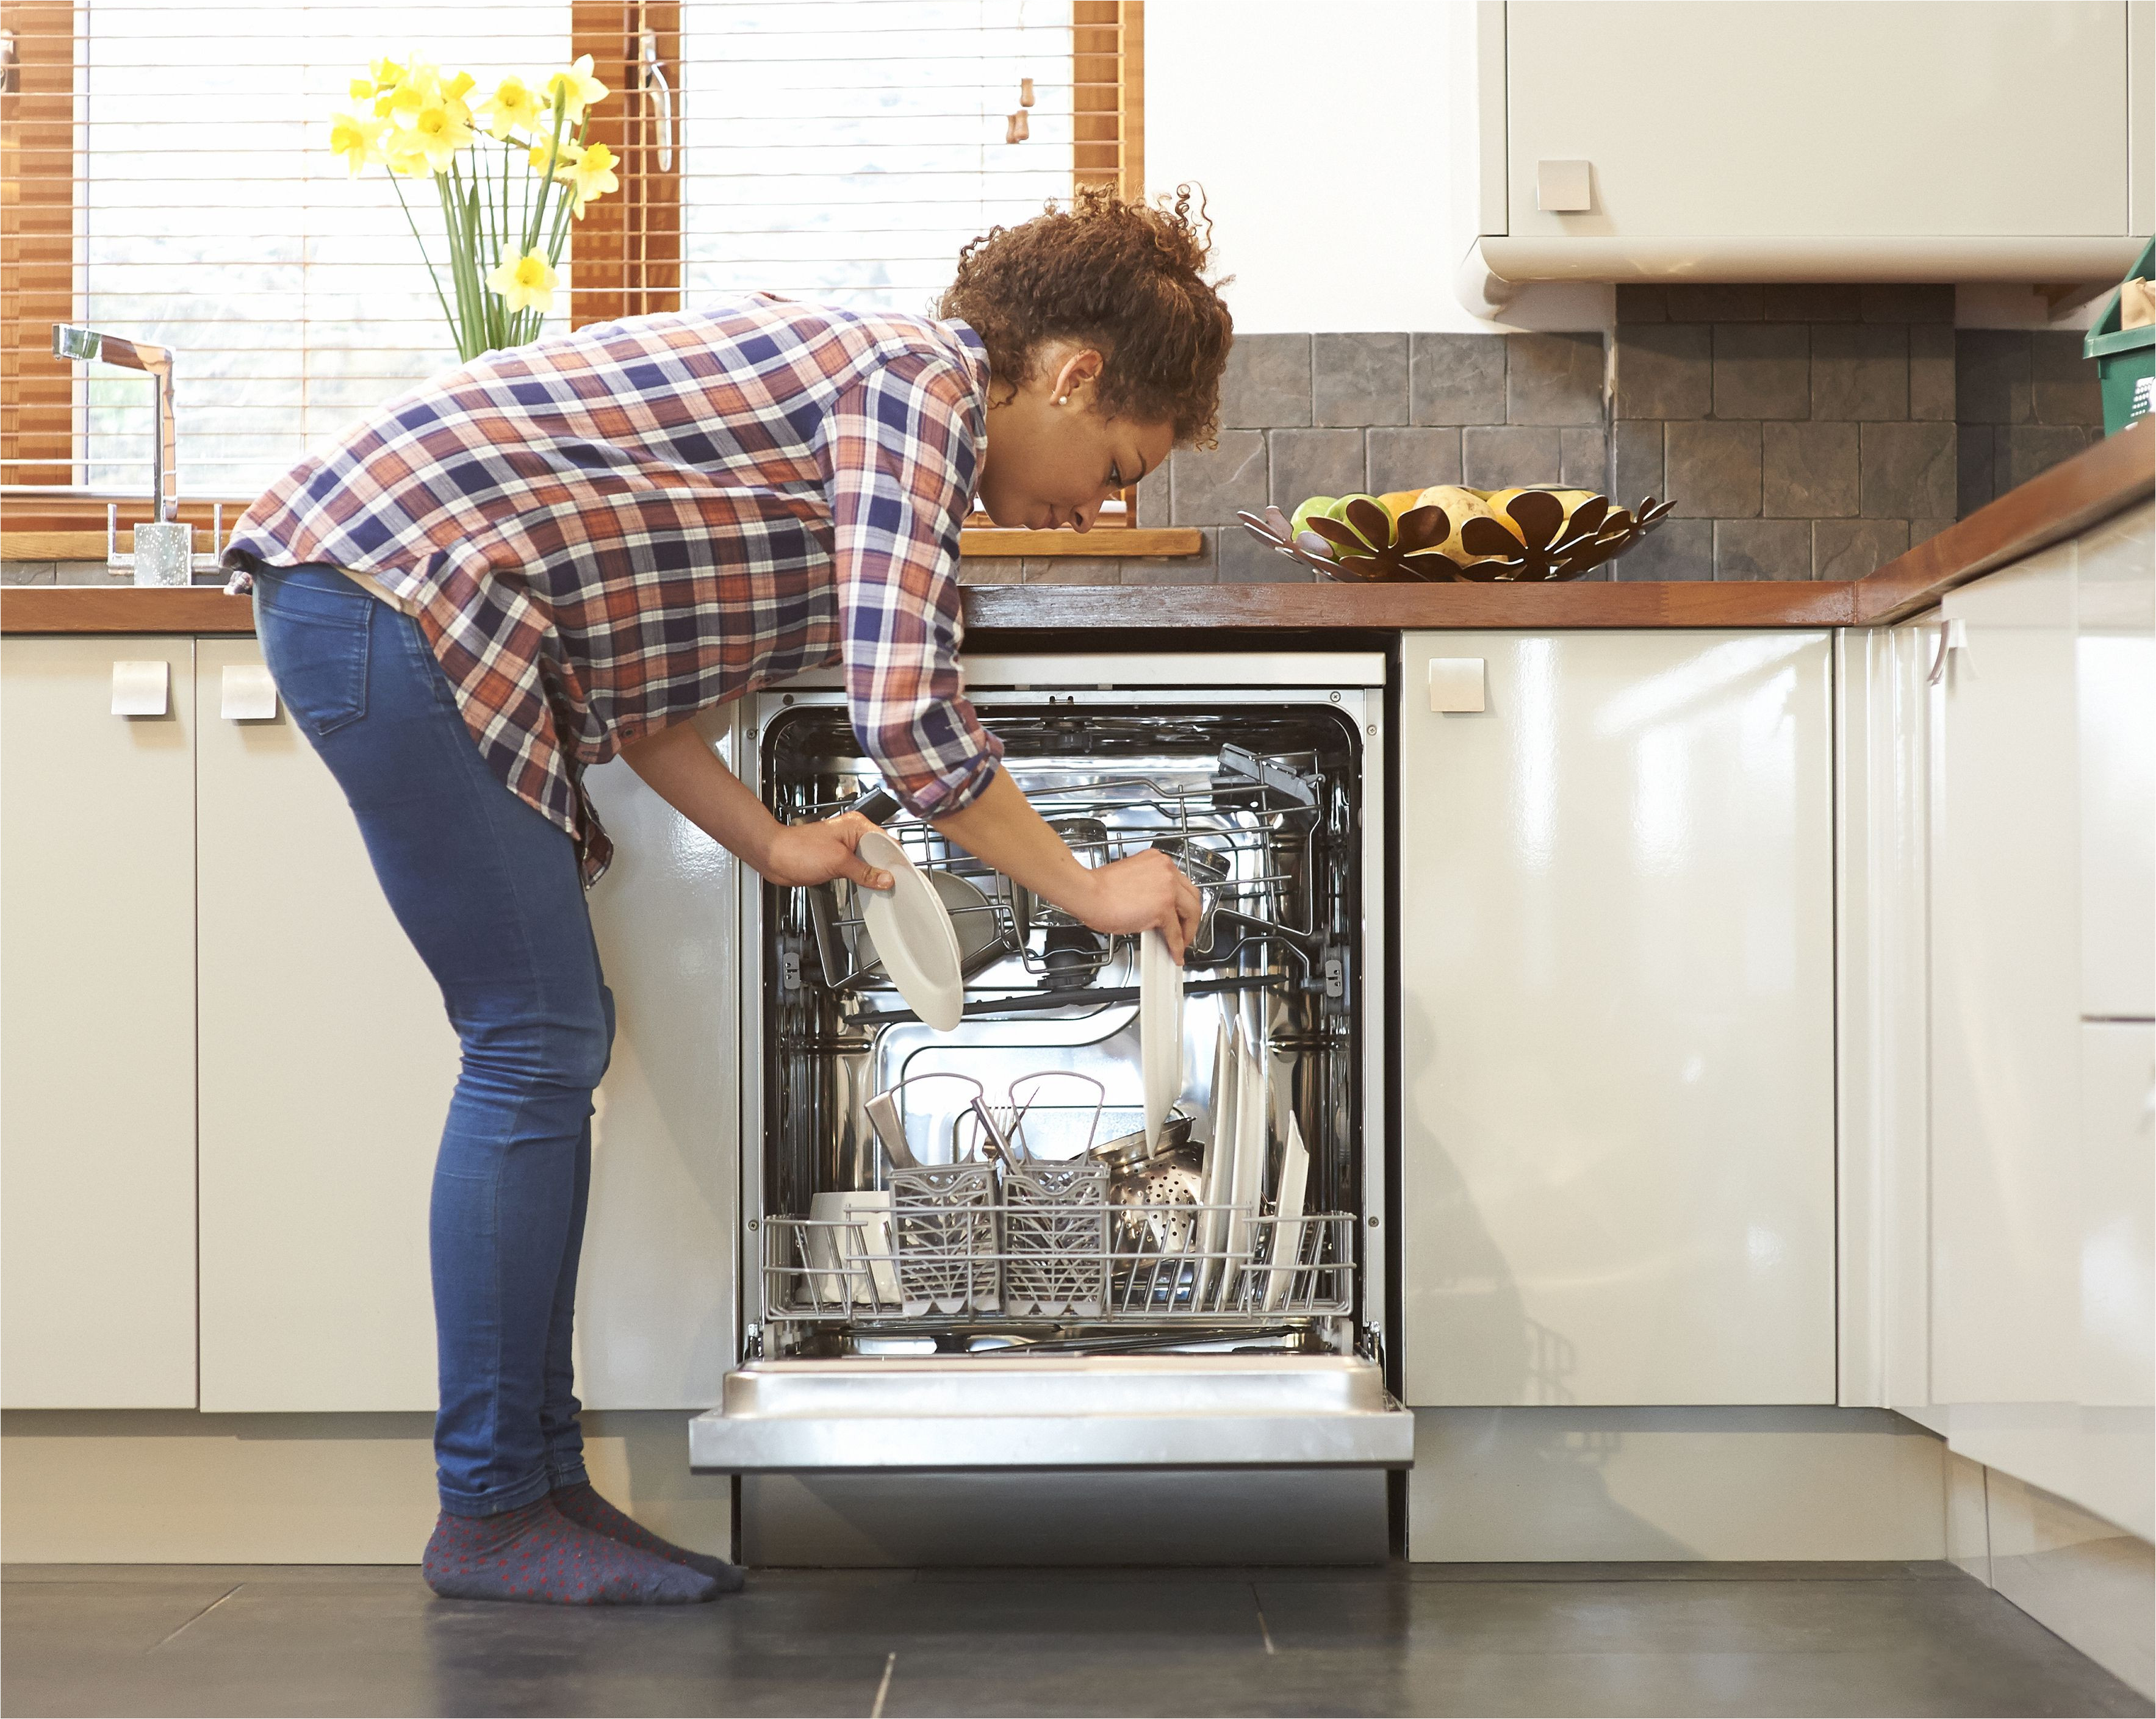 woman unloading dish washer in kitchen 483712233 57969bce3df78ceb8687e547 jpg